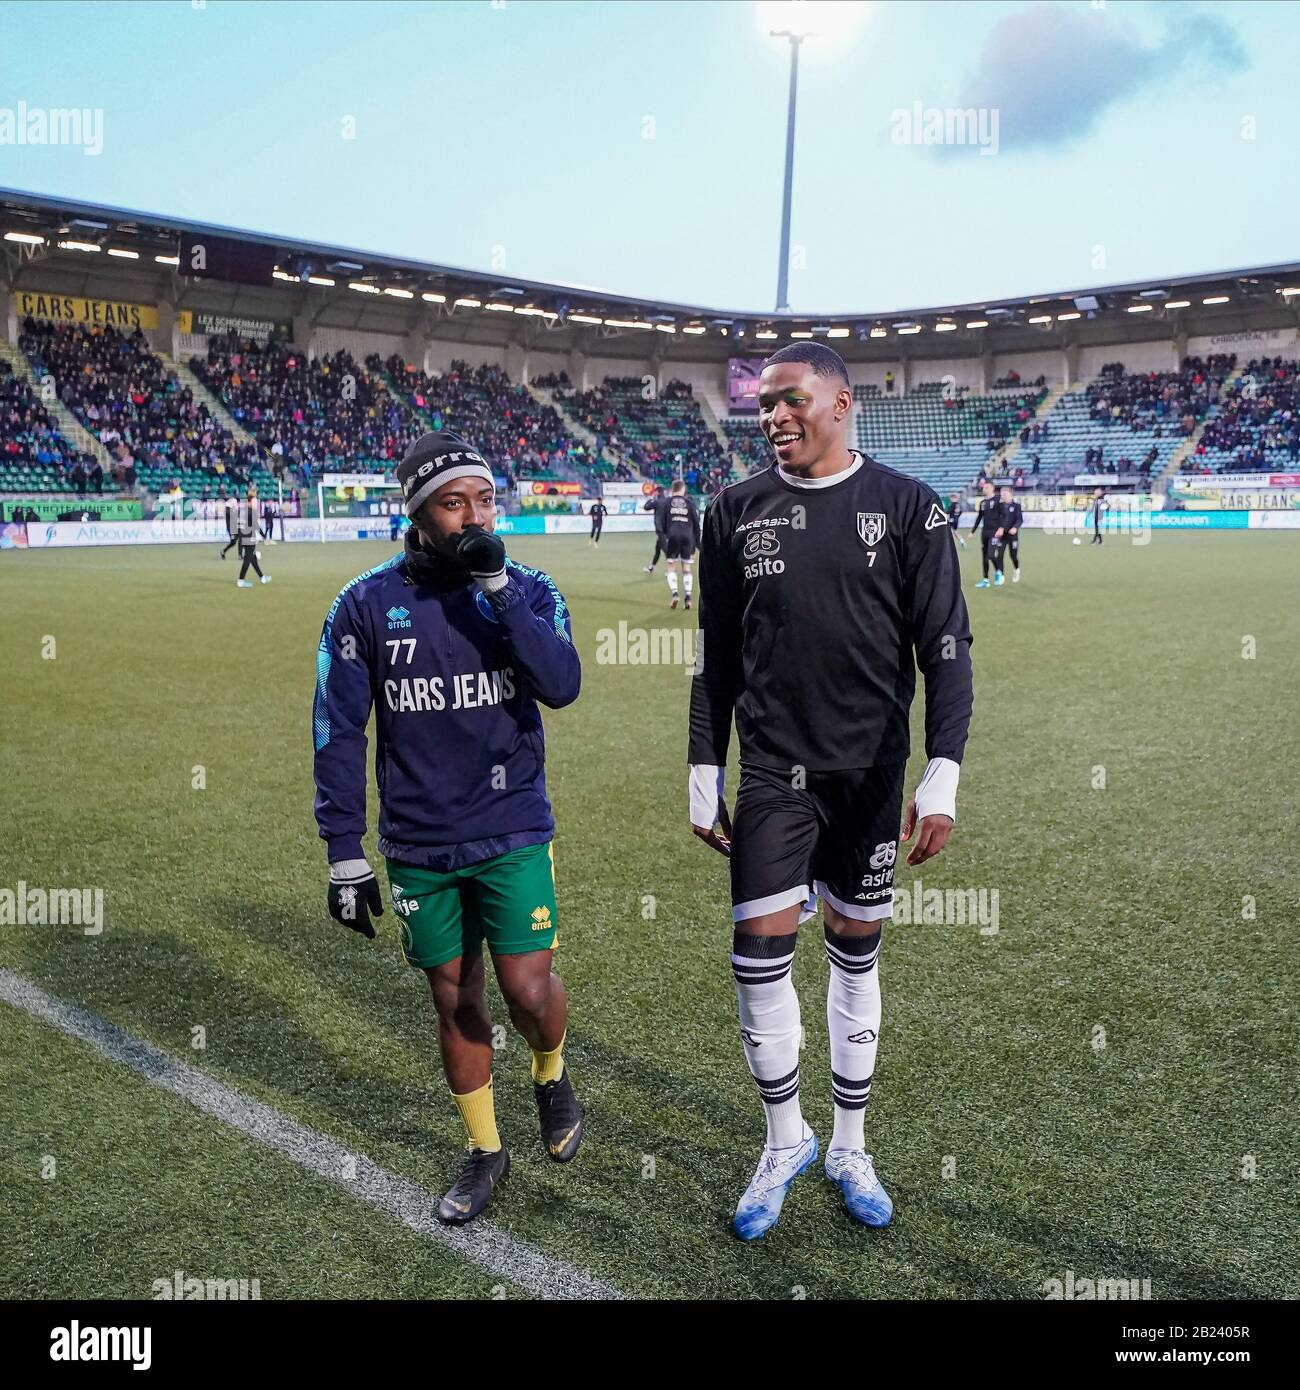 The Hague Netherlands 29th Feb 2020 The Hague 29 02 2020 Cars Jeans Stadion Ado Den Haag Dutch Eredivisie Football Season 2019 2020 Ado Player Elson Hooi L And Heracles Player Jeremy Cijntje R Before